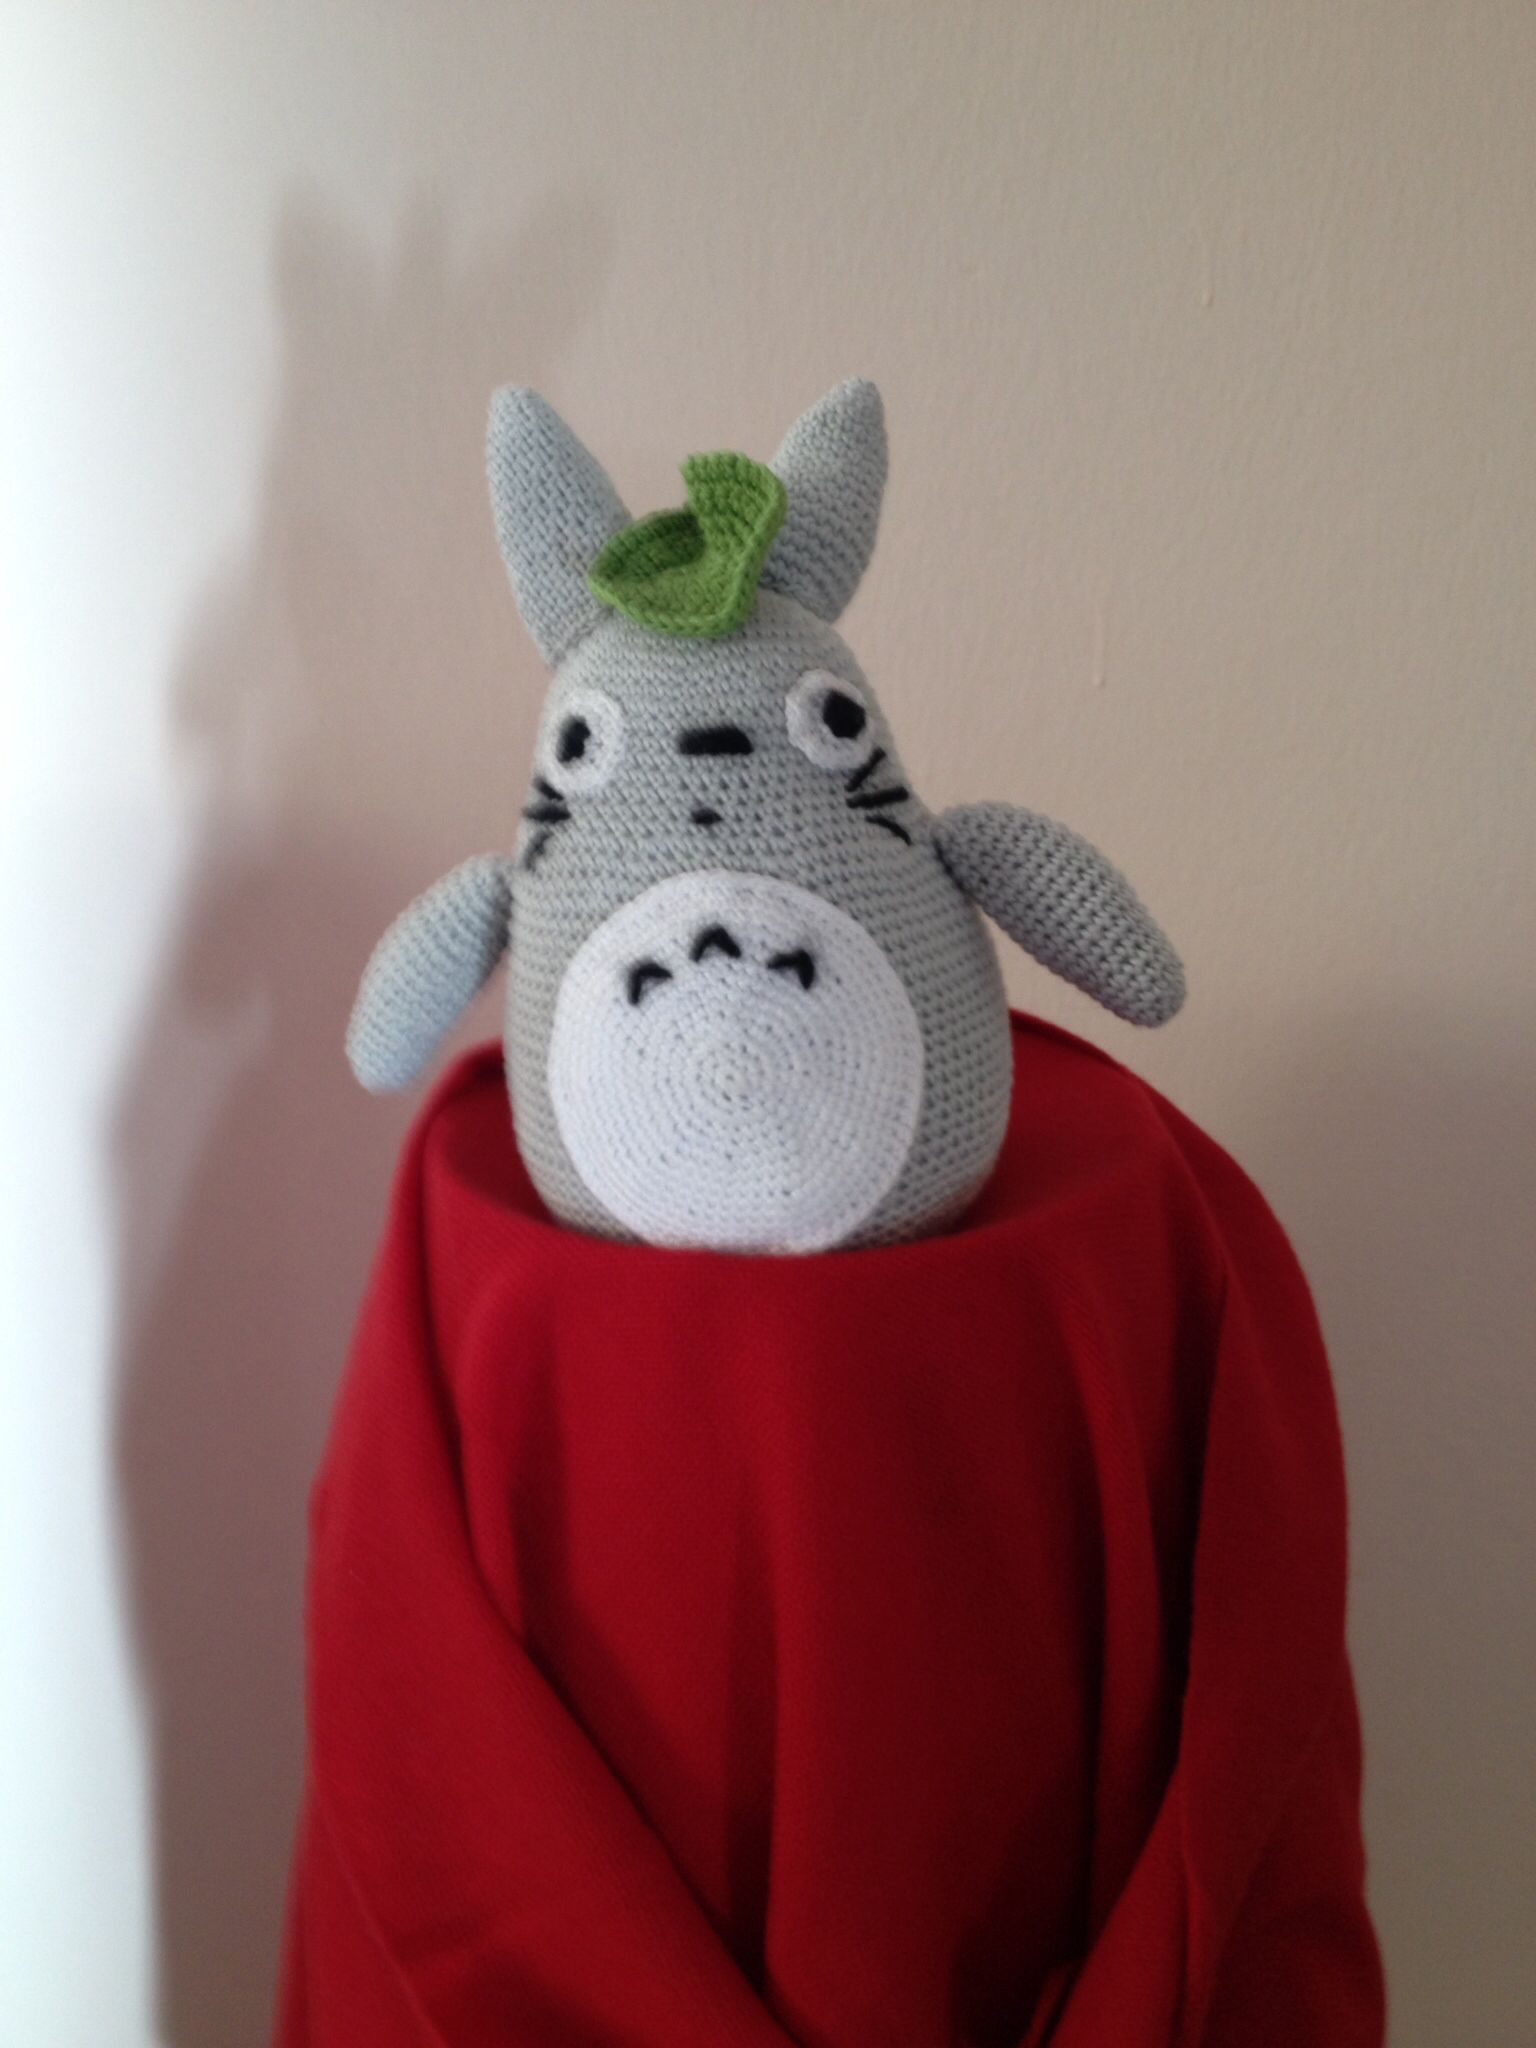 My first Totoro